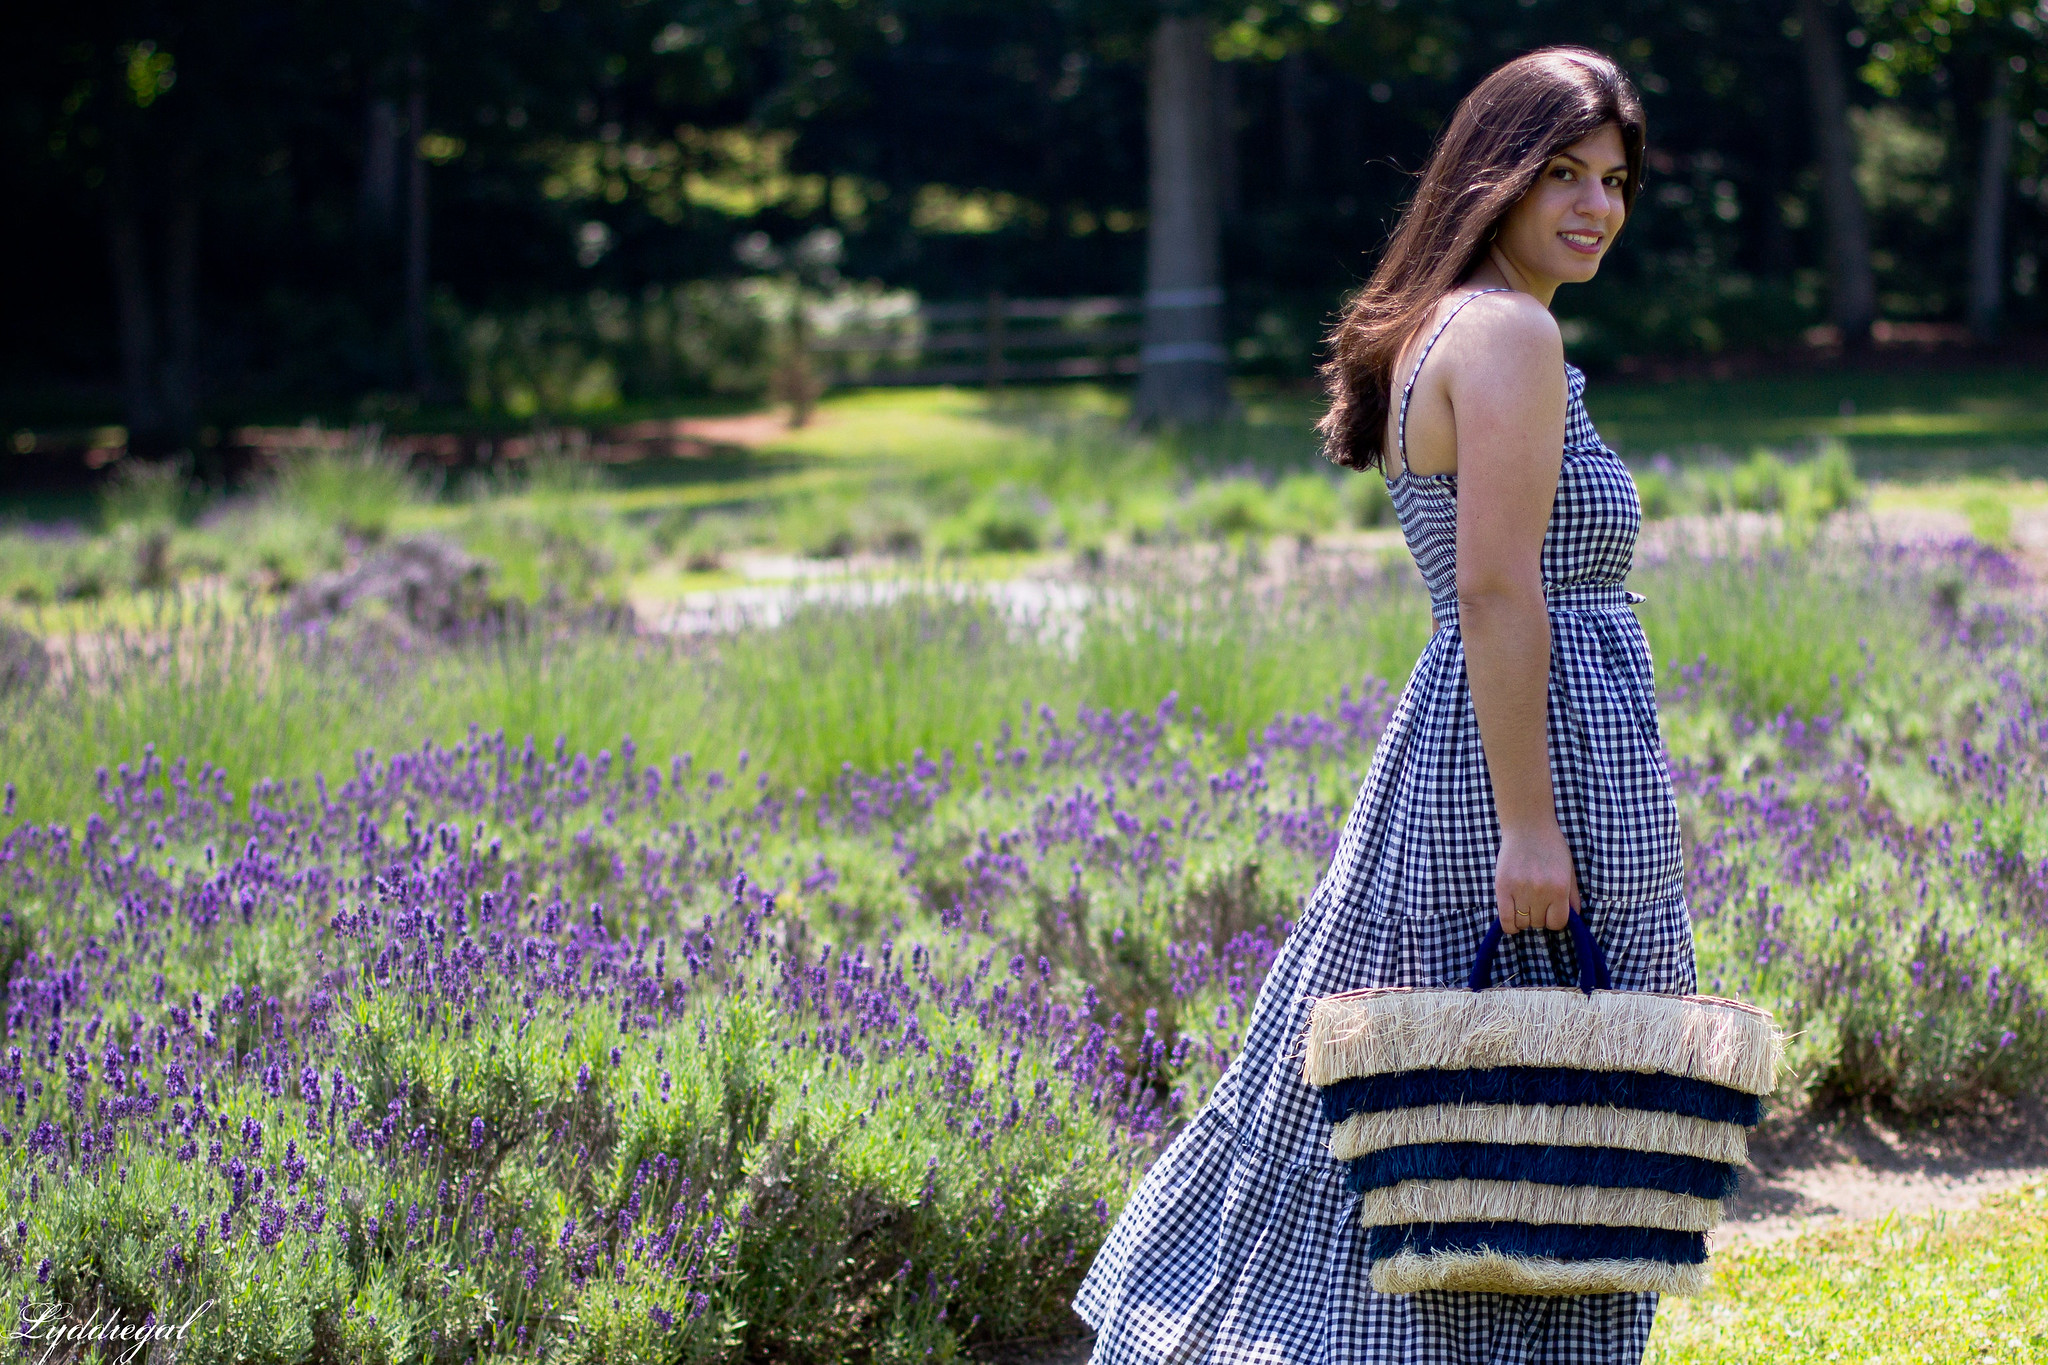 gingham maxi dress, pinata tote bag, lavender field-5.jpg